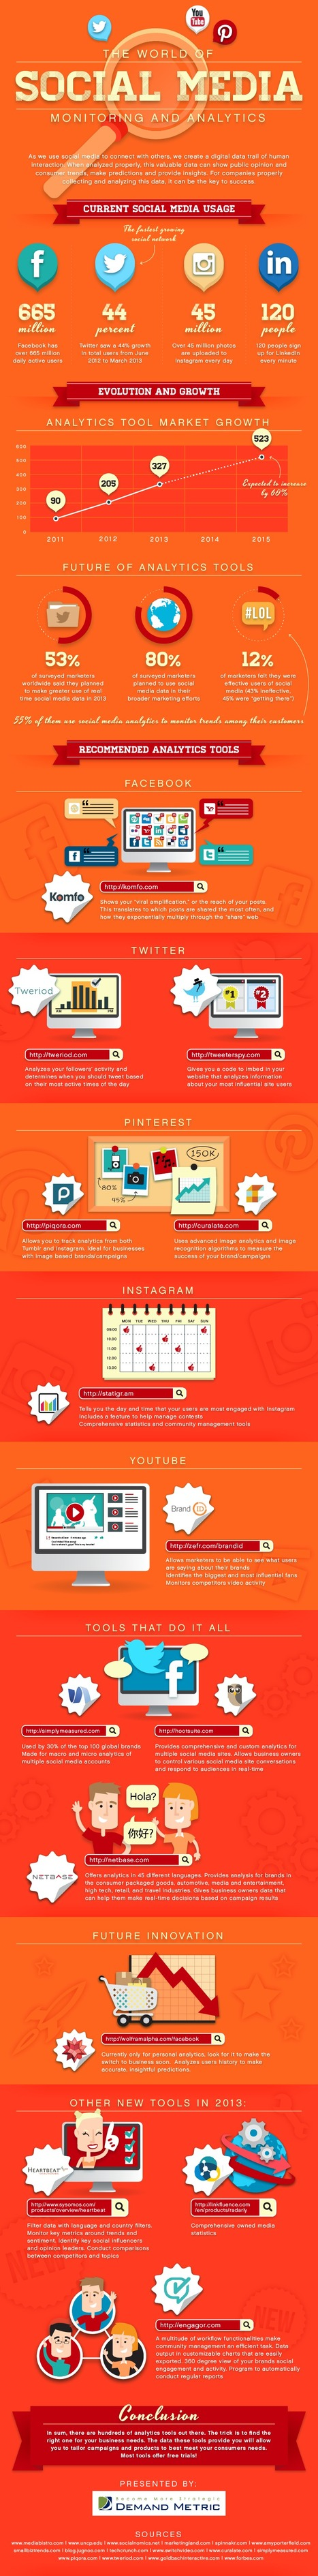 The World of Social Media Monitoring & Analytics  [infographic] | Online World | Scoop.it